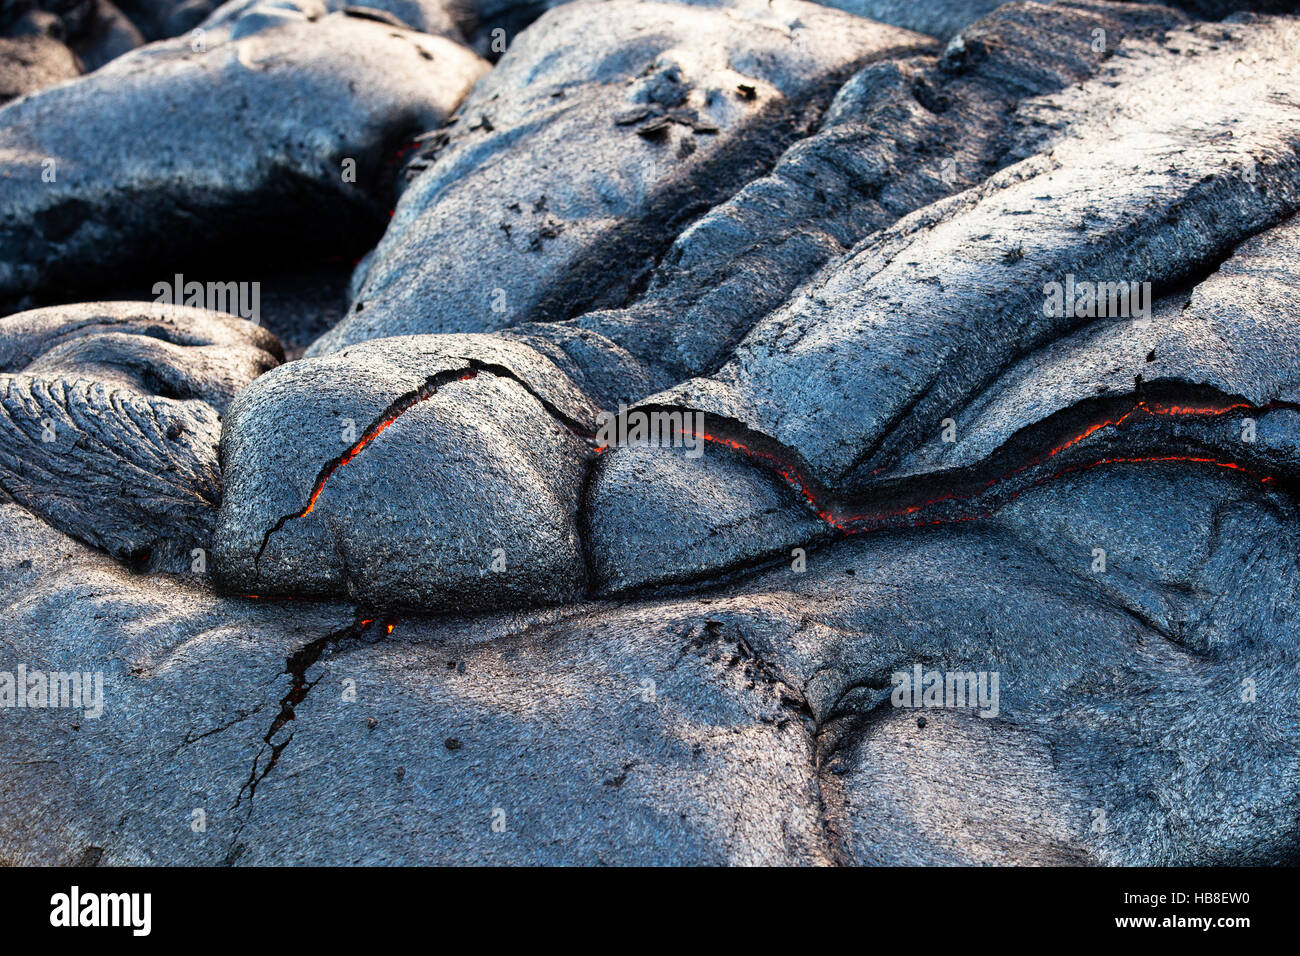 Volcanic eruption, glowing lava flowing and cooling, Pu'u'Ō'ō Volcano, Hawai'i Volcanoes National - Stock Image